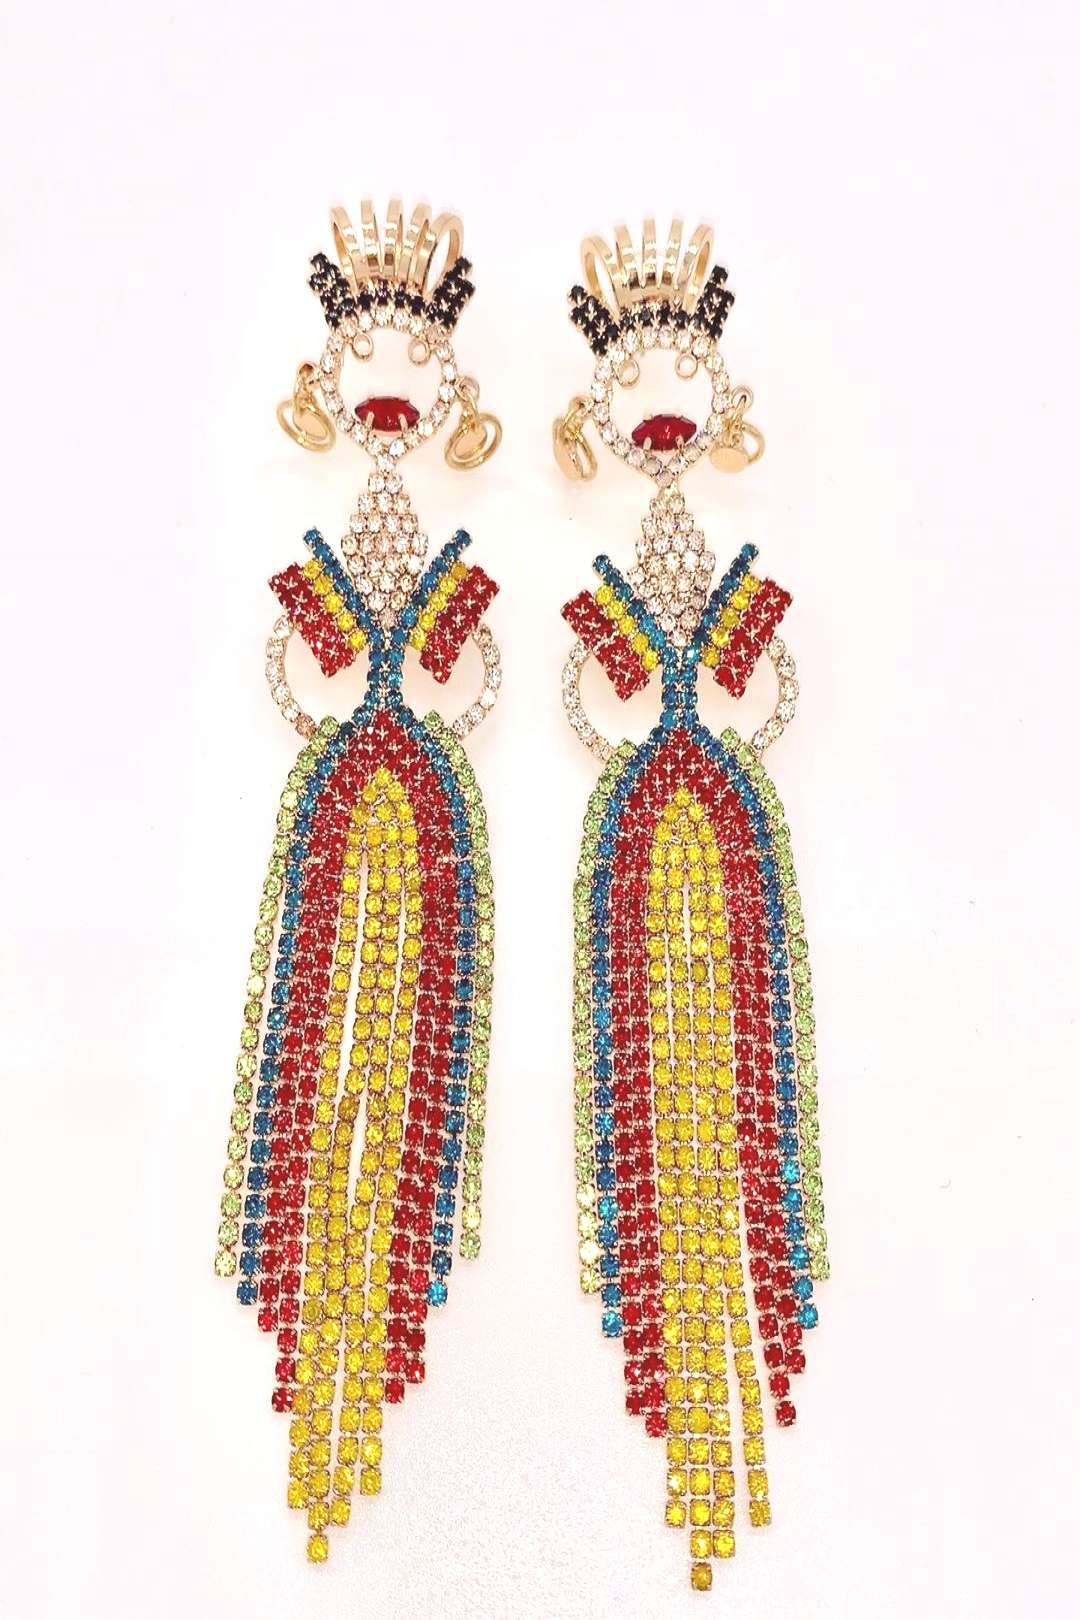 #randomluxe #earrings #february #tuesday #perfect #louise #152020 #ready #mardi #photo #whos #gras #for #fat #by Whos ready for Fat Tuesday LOUISE earrings perfect for Mardi GrasYou can find Chic fash...